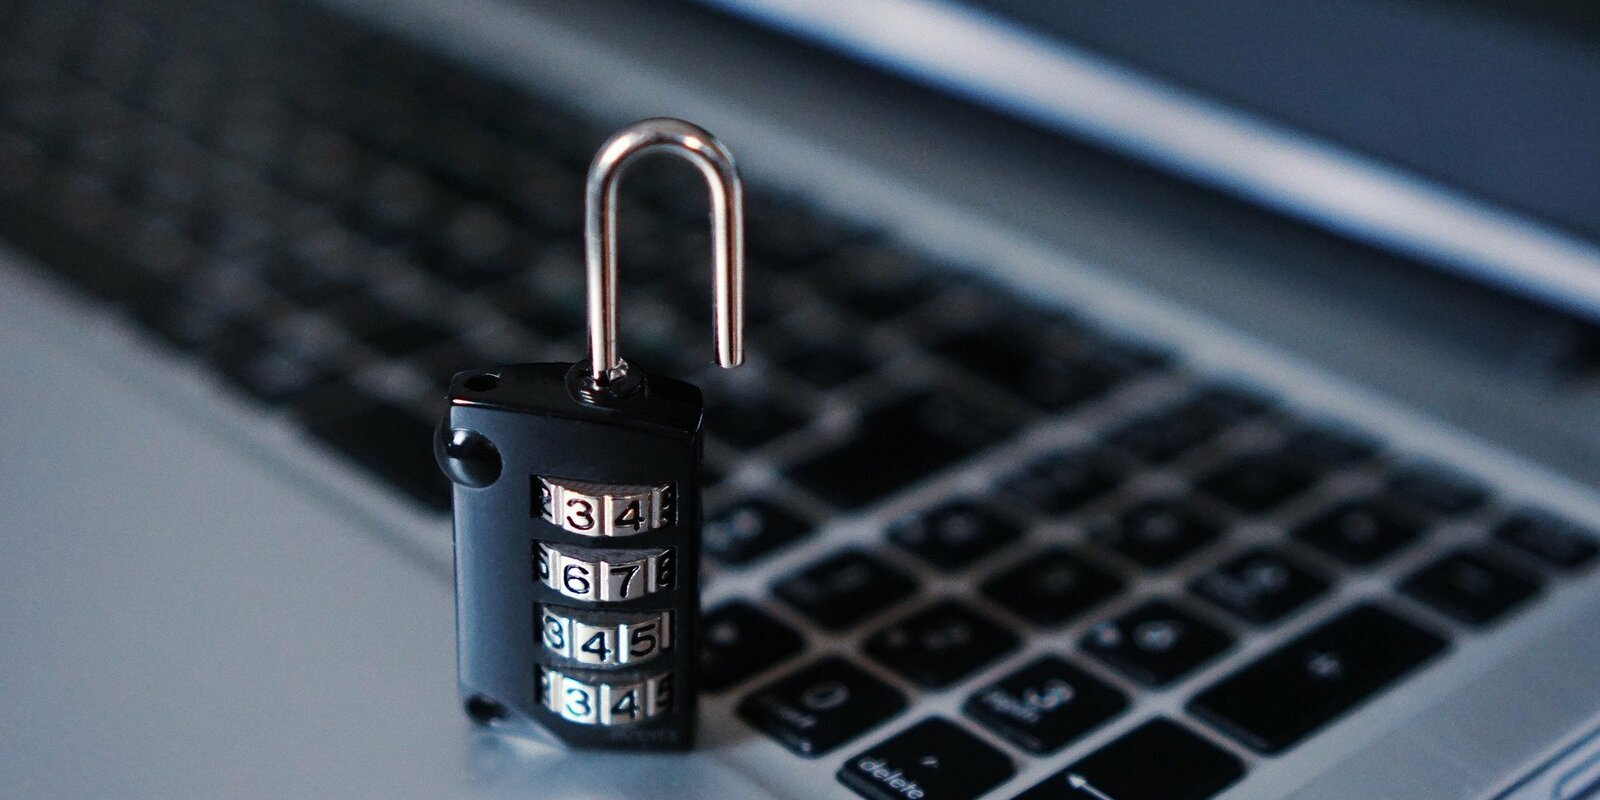 lock on a laptop representing cybersecurity awareness in a business